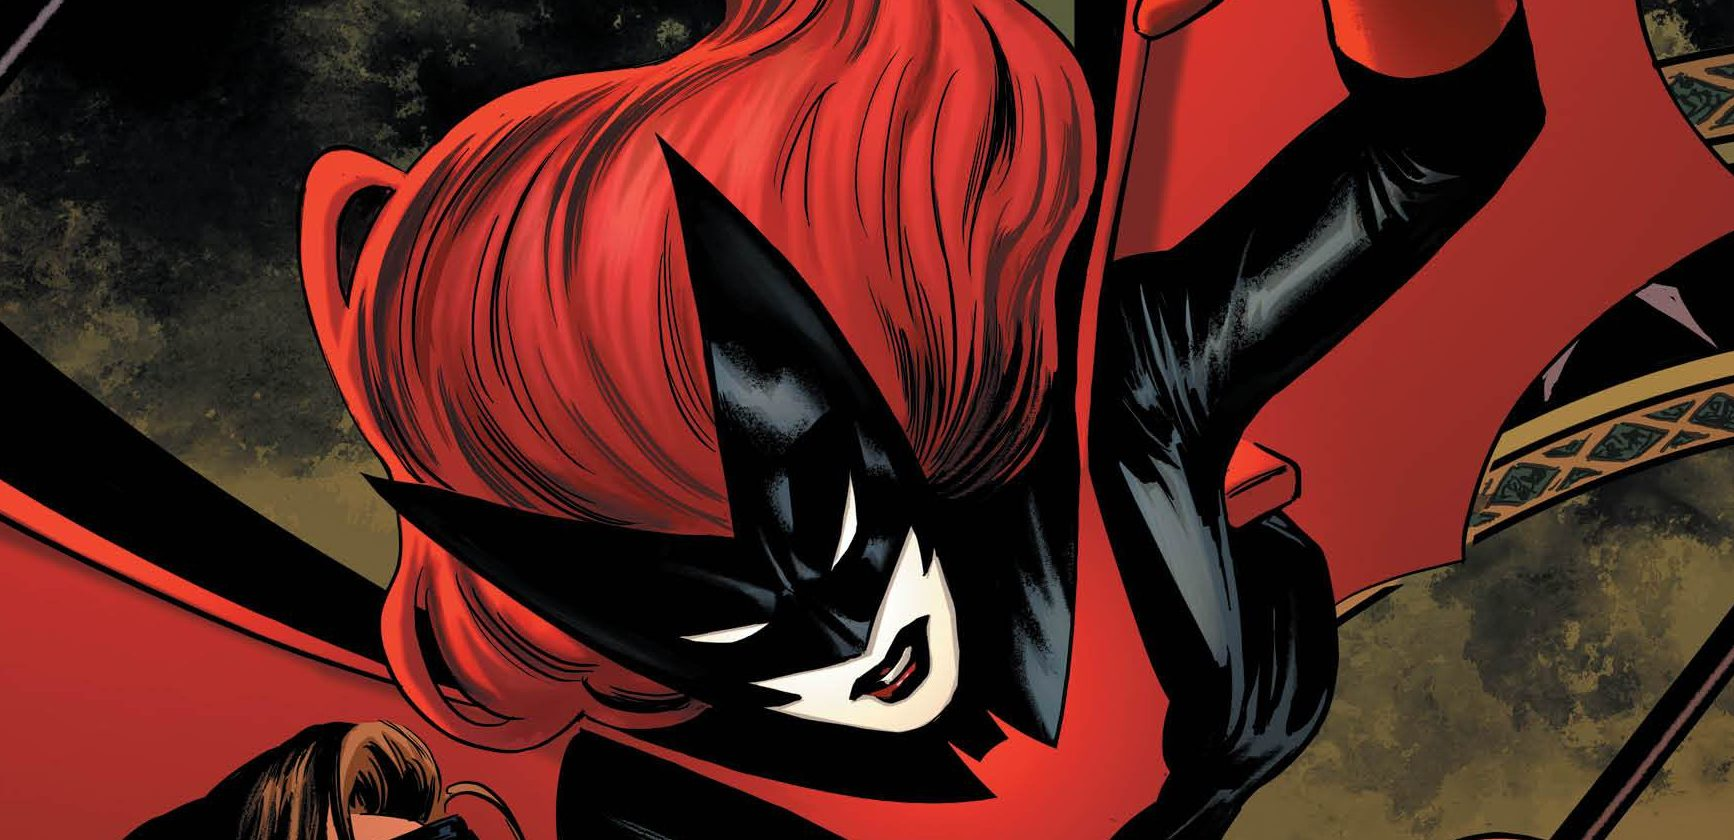 DC Comics Rebirth  Batman Family Spoilers Batwoman 1 Steps Up From Shadow Of The Bat  Takes